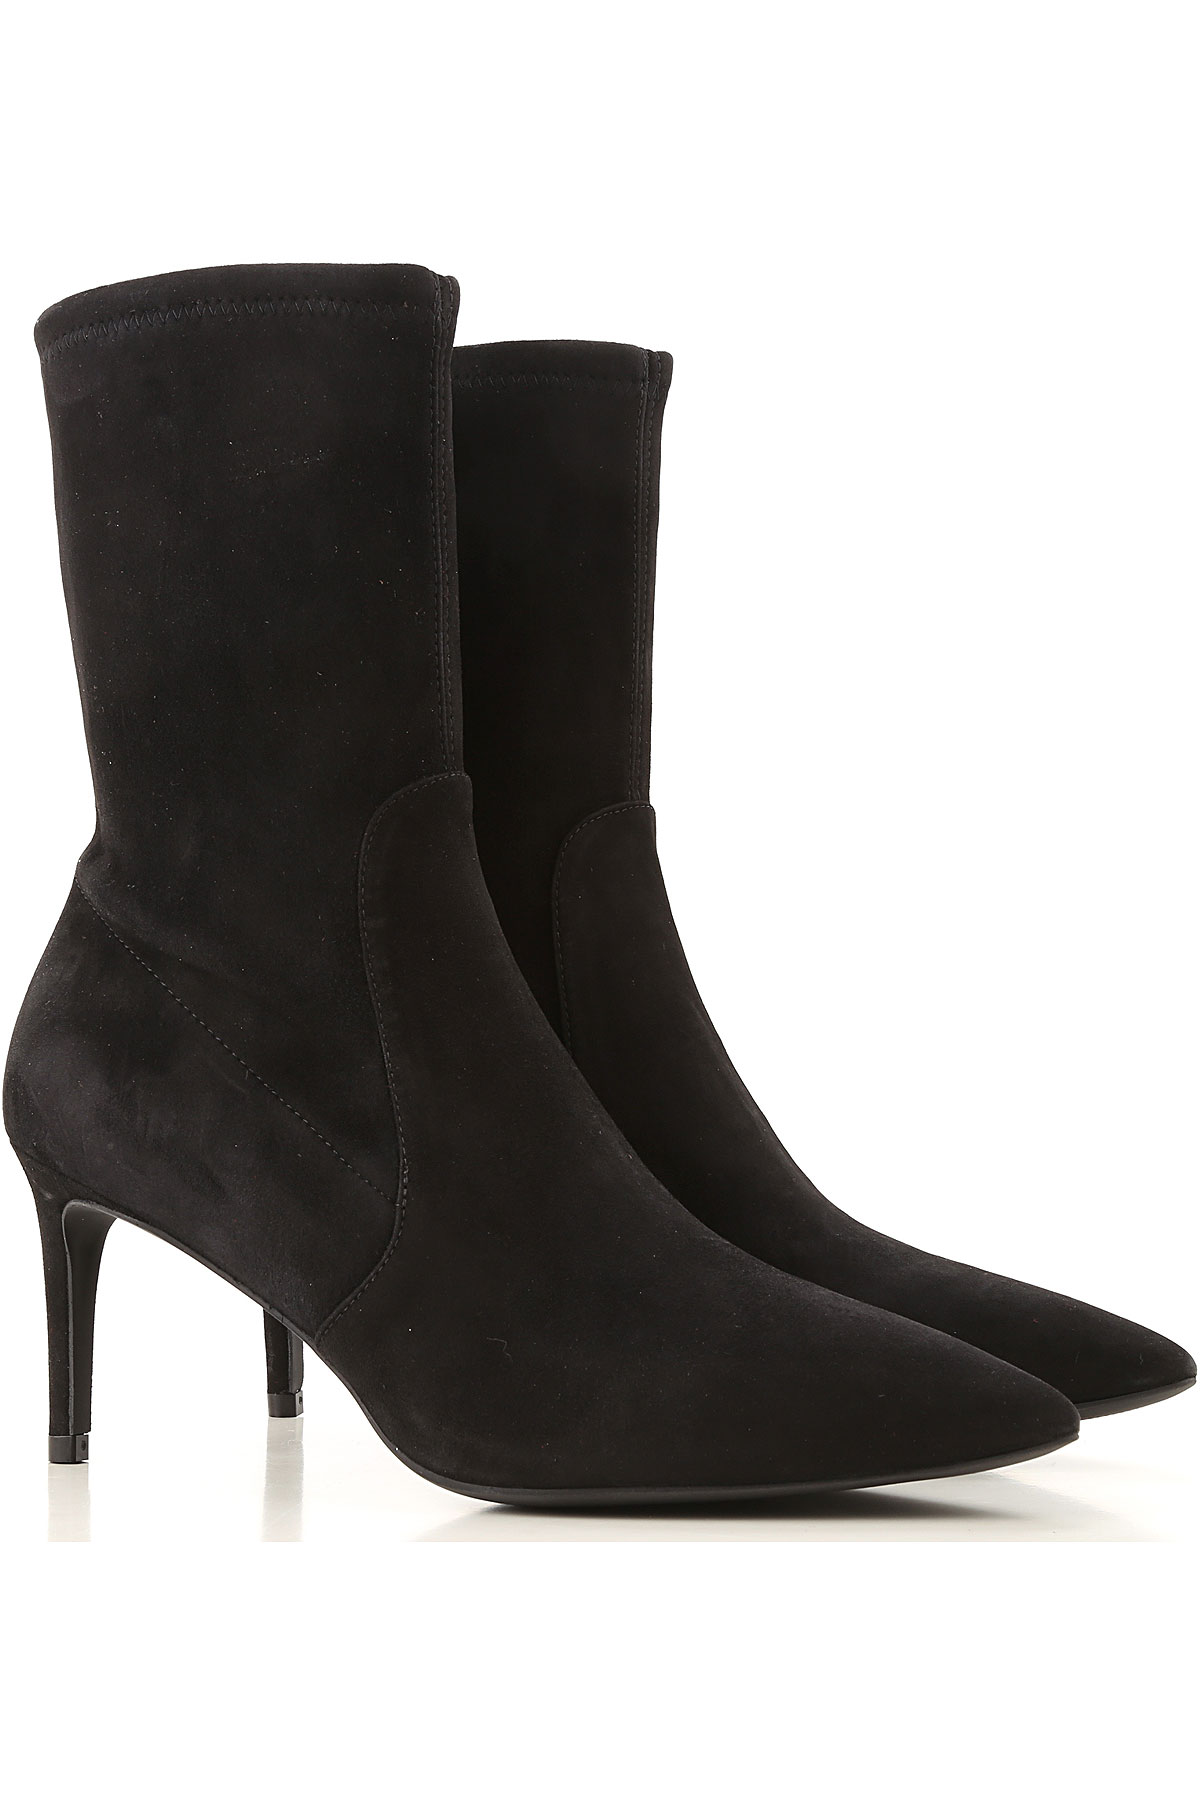 Stuart Weitzman Boots for Women, Booties On Sale, Black, Suede leather, 2019, US 5.5 (EU 36)